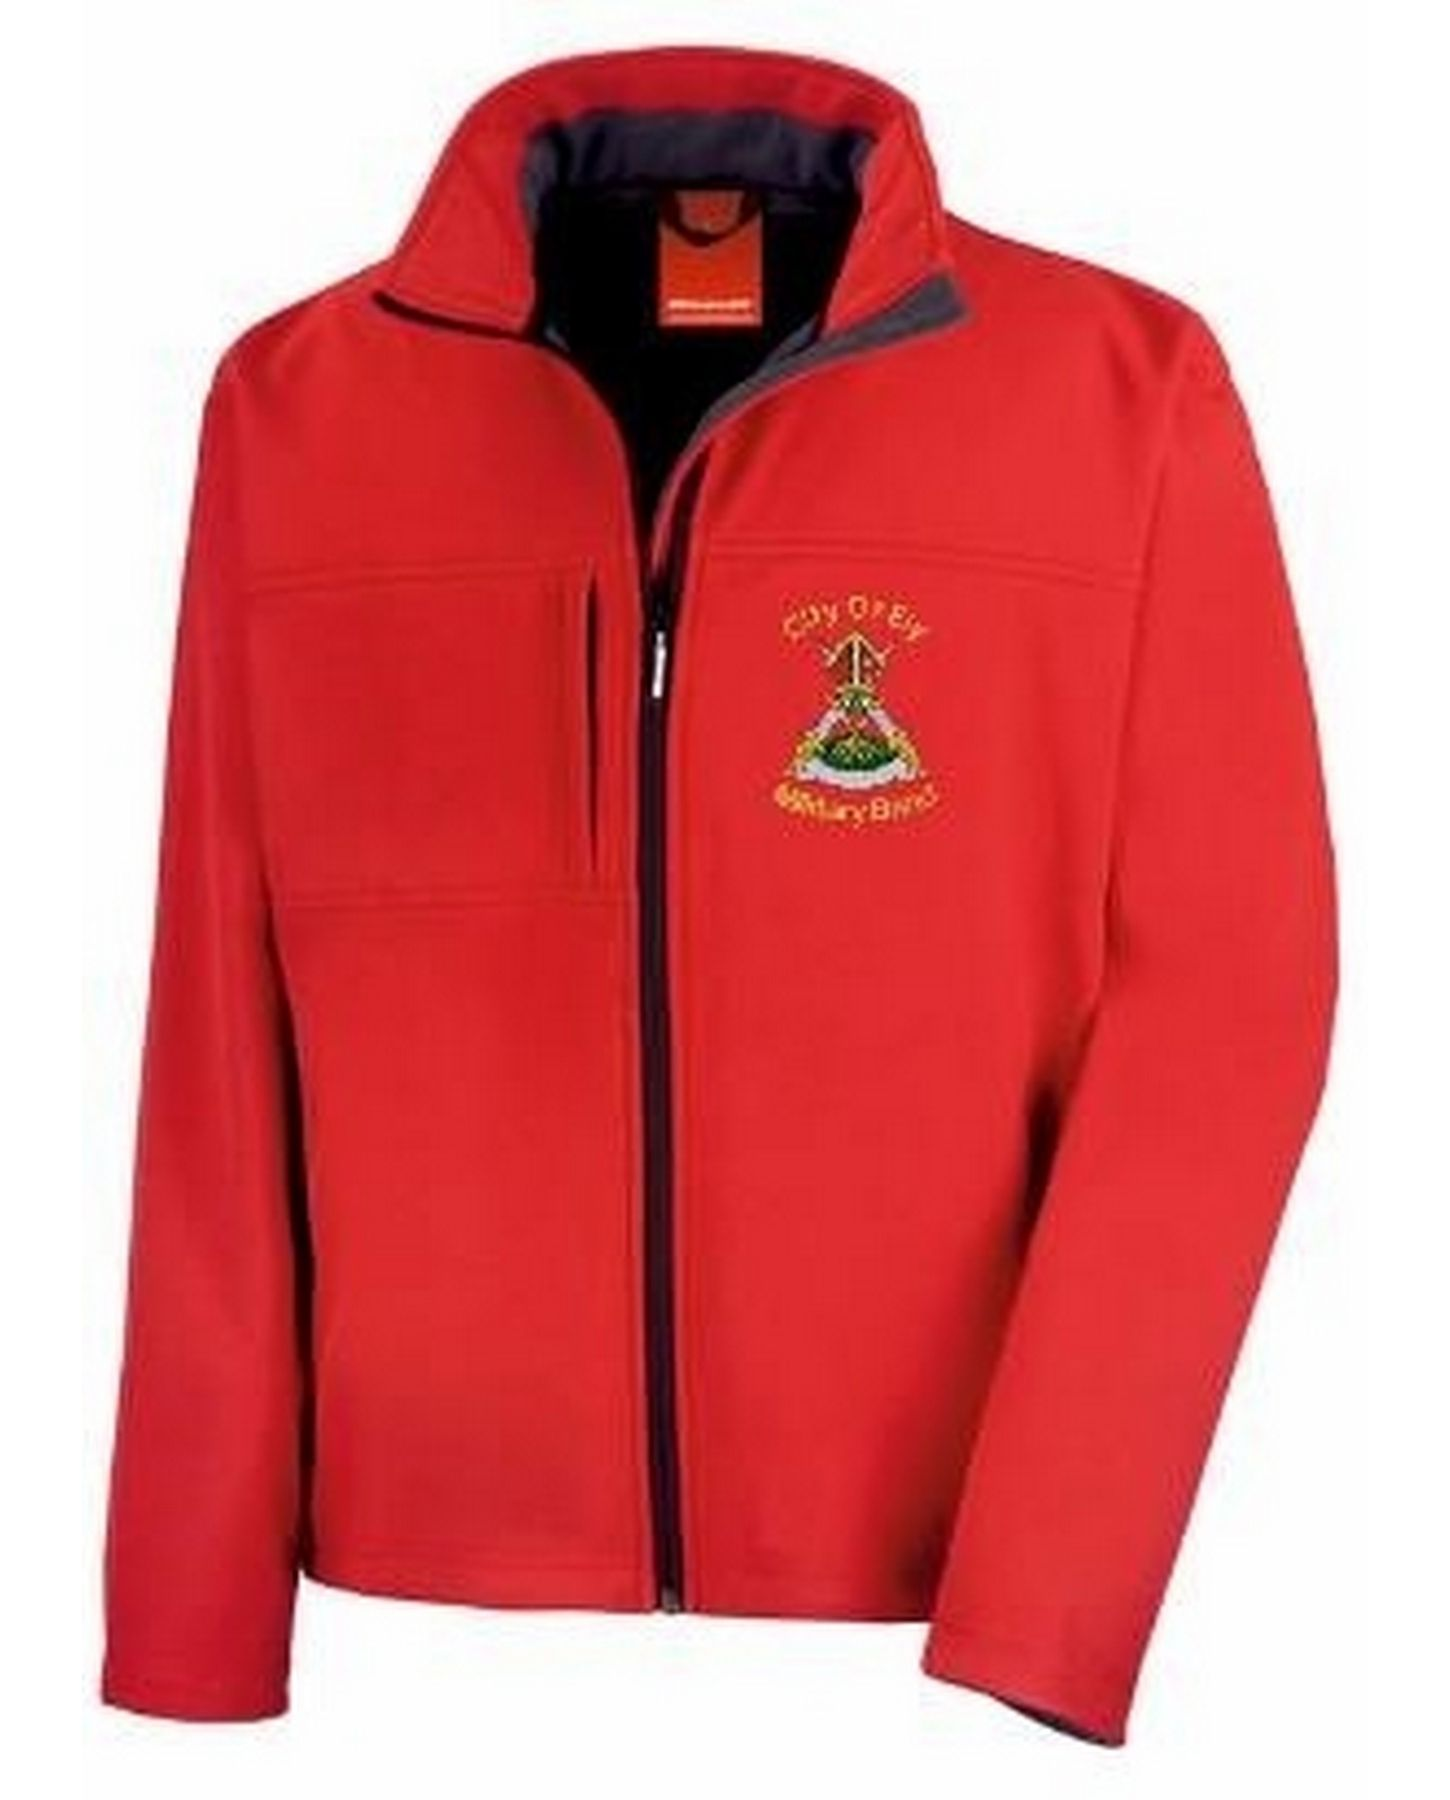 Ely Military Band – 3 Layer Softshell